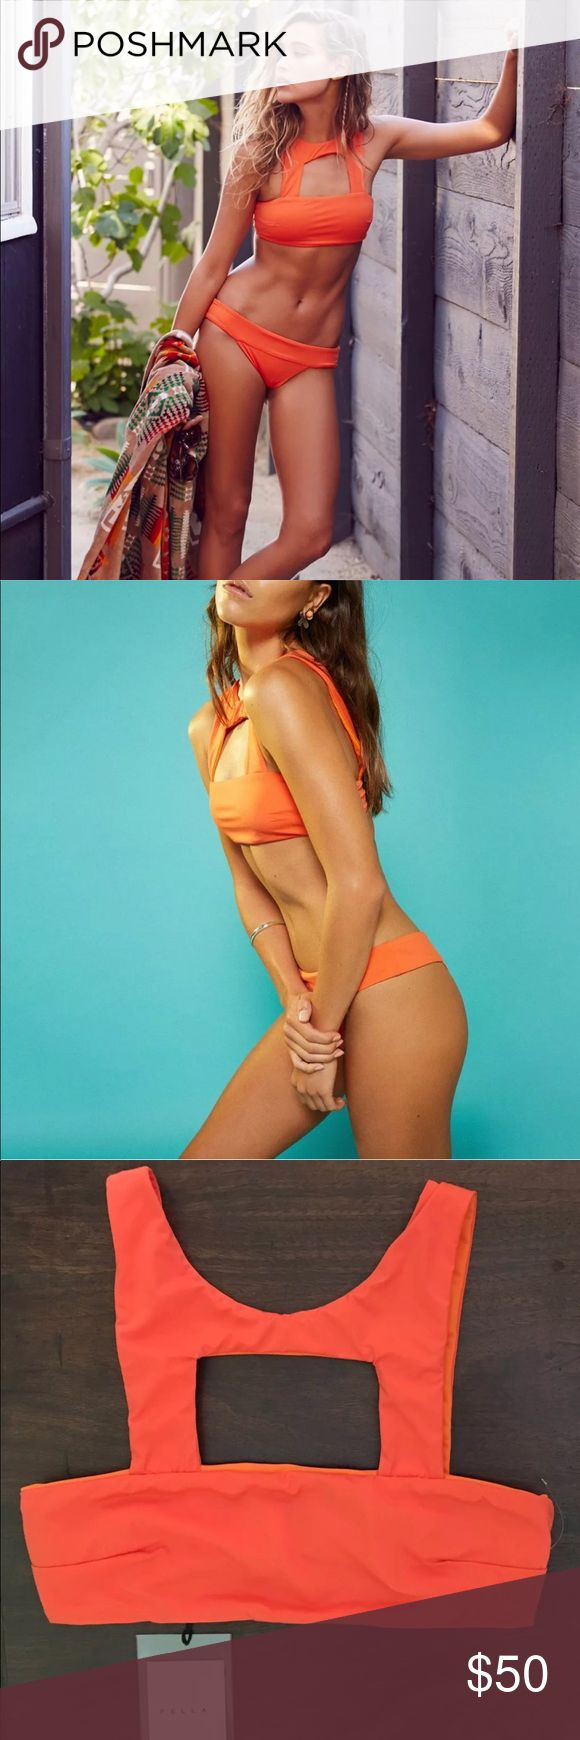 Fella Orange High Neck Bandeau Cutout Bikini Top Free People by Fella Oliver Top  Color: Orange MSRP: $135.00 Lycra 80% PA 20% EA | Italian Fabric. High neck, cut out bandeau top for the girl who wants to stand out at the beach Perfect for girls of all bust sizes Pictured with the Oliver bottom   * Please Note: Mark through inside label to prevent return to Free People.  I also have this top in black and white. Fella Swim Bikinis